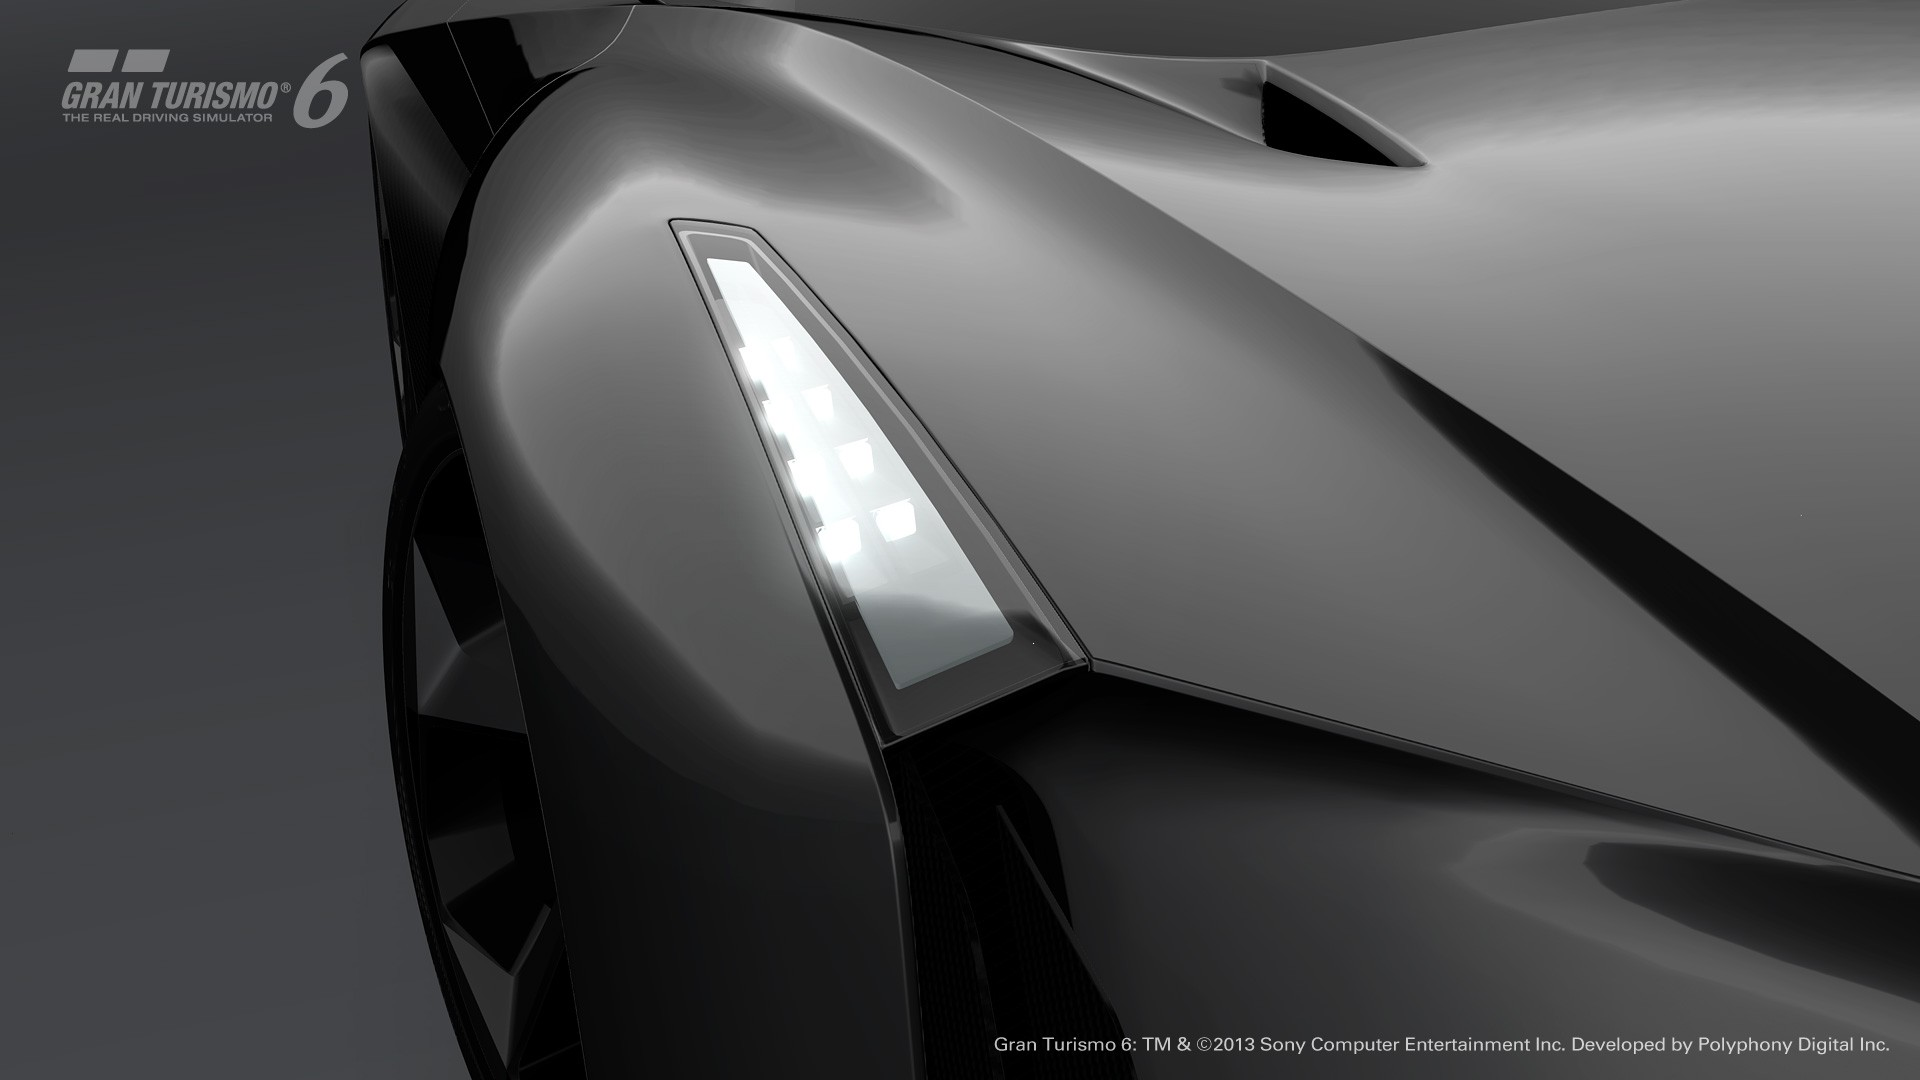 2014_Nissan_Concept_2020_Vision_Gran_Turismo_033_1813.jpg